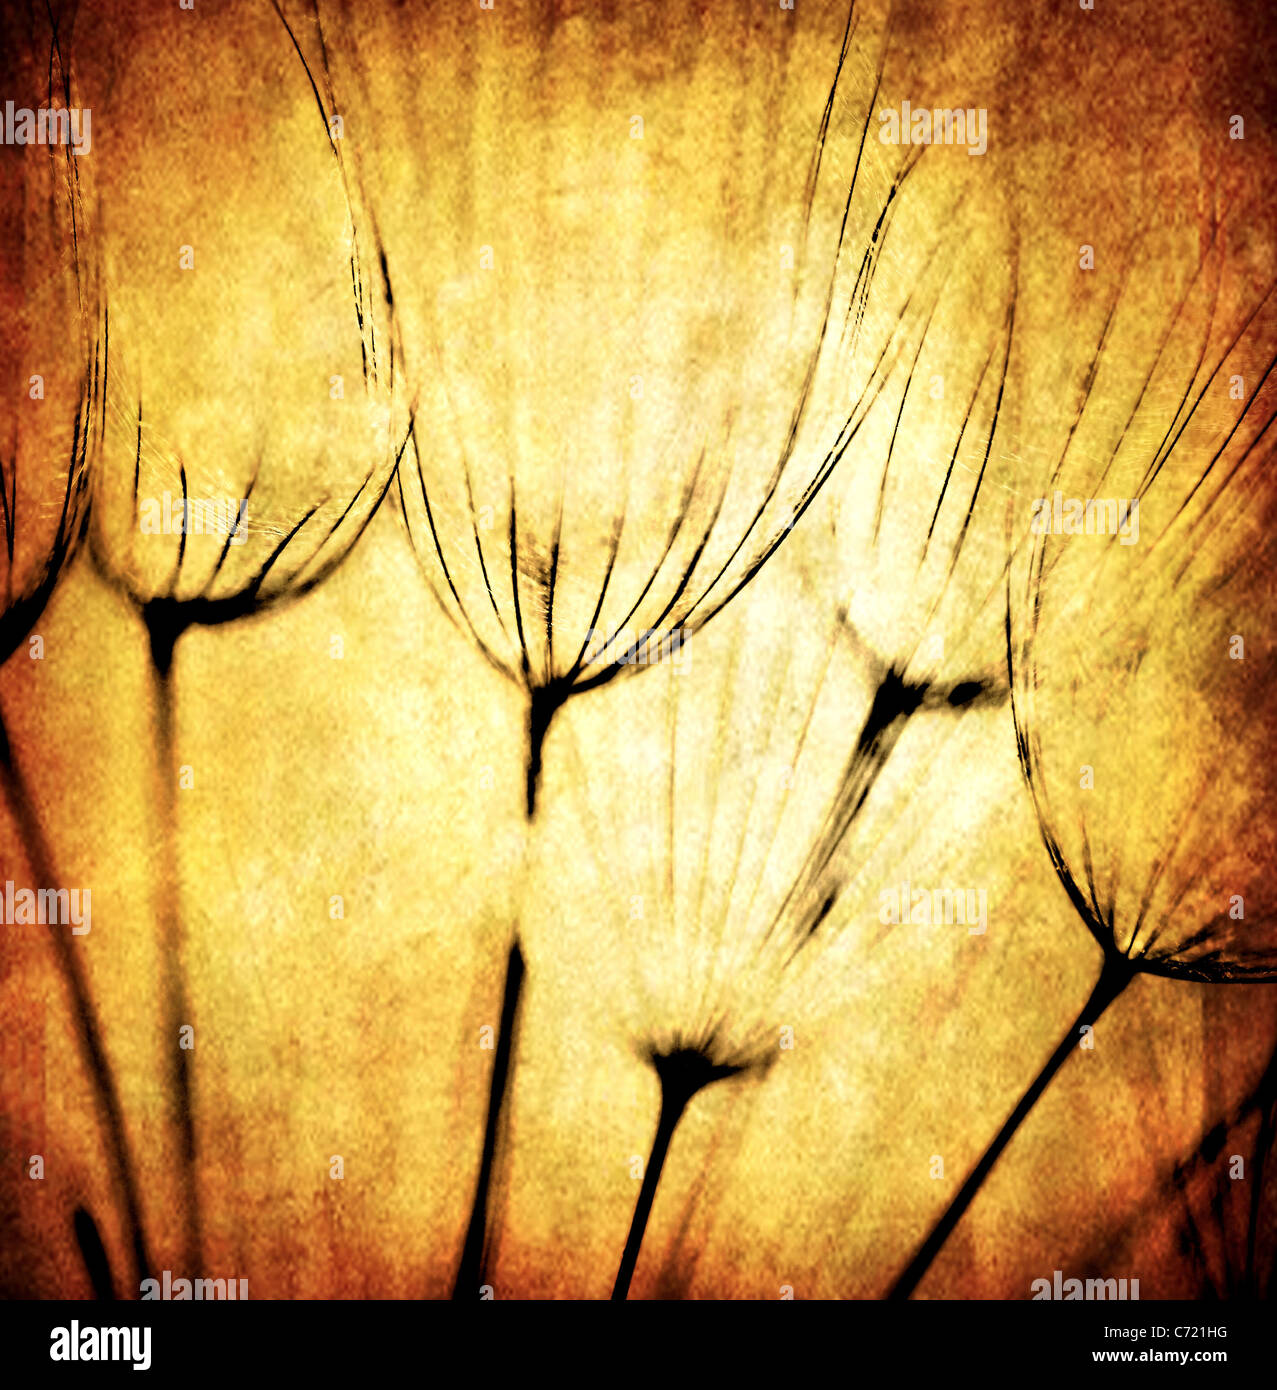 Grunge abstract dandelion flower background, soft focus - Stock Image